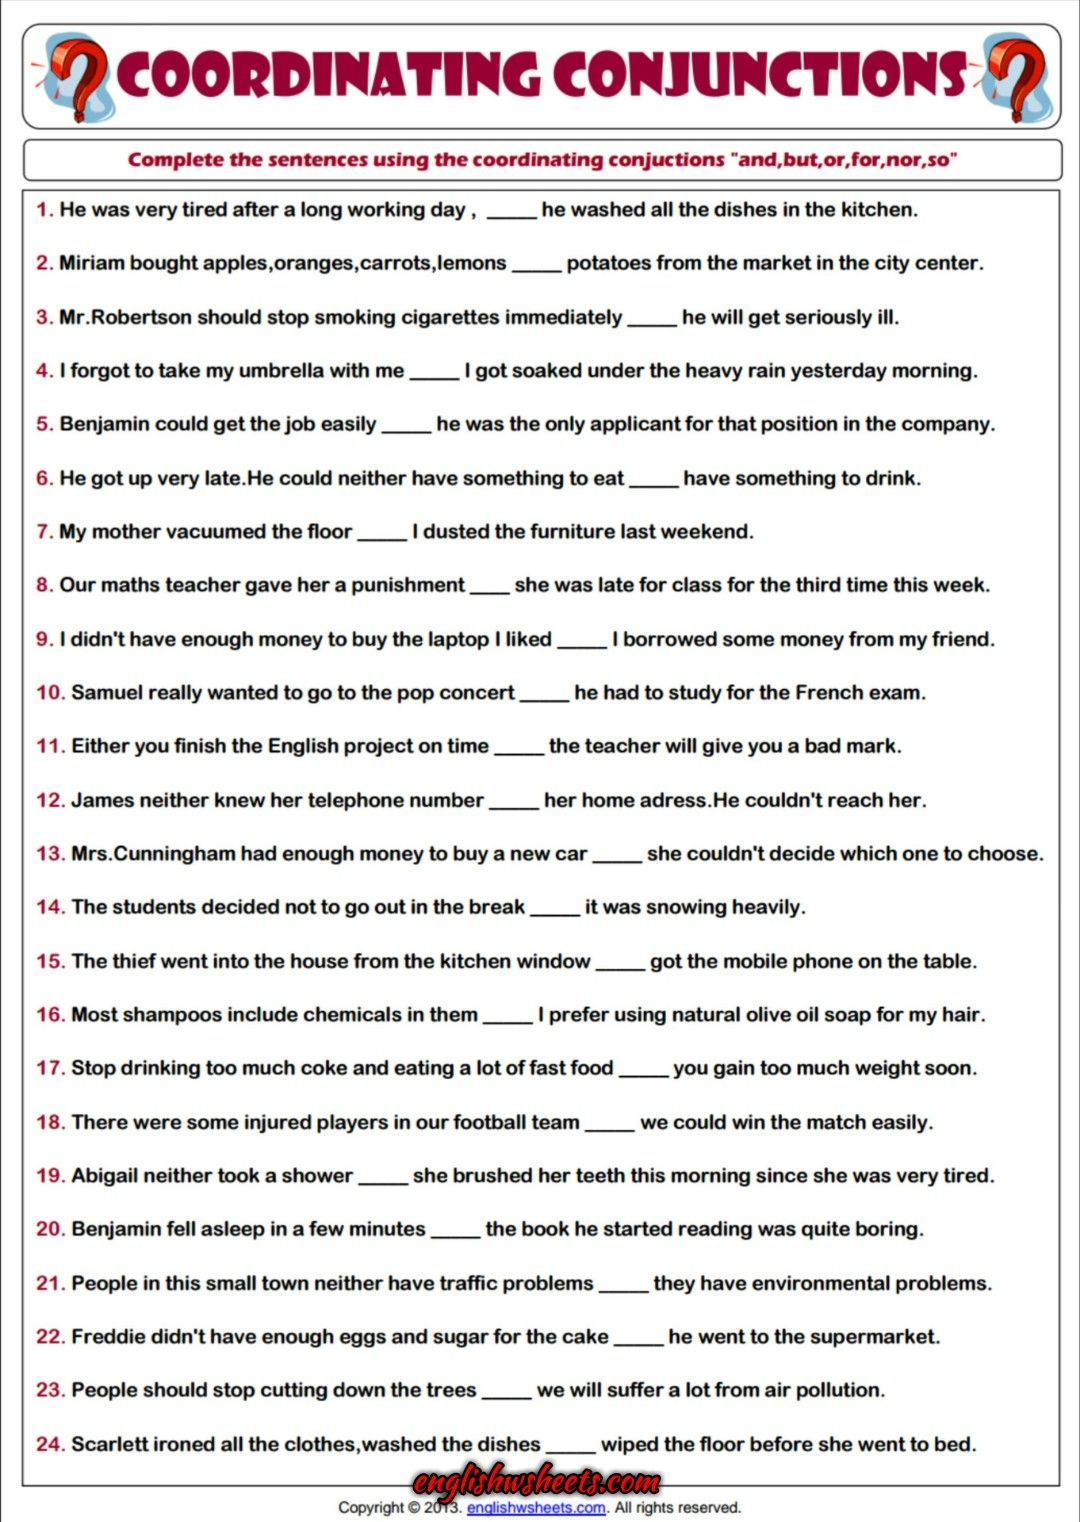 Worksheets Esl Grammar Worksheets coordinating conjunctions esl printable grammar worksheet 2 worksheet